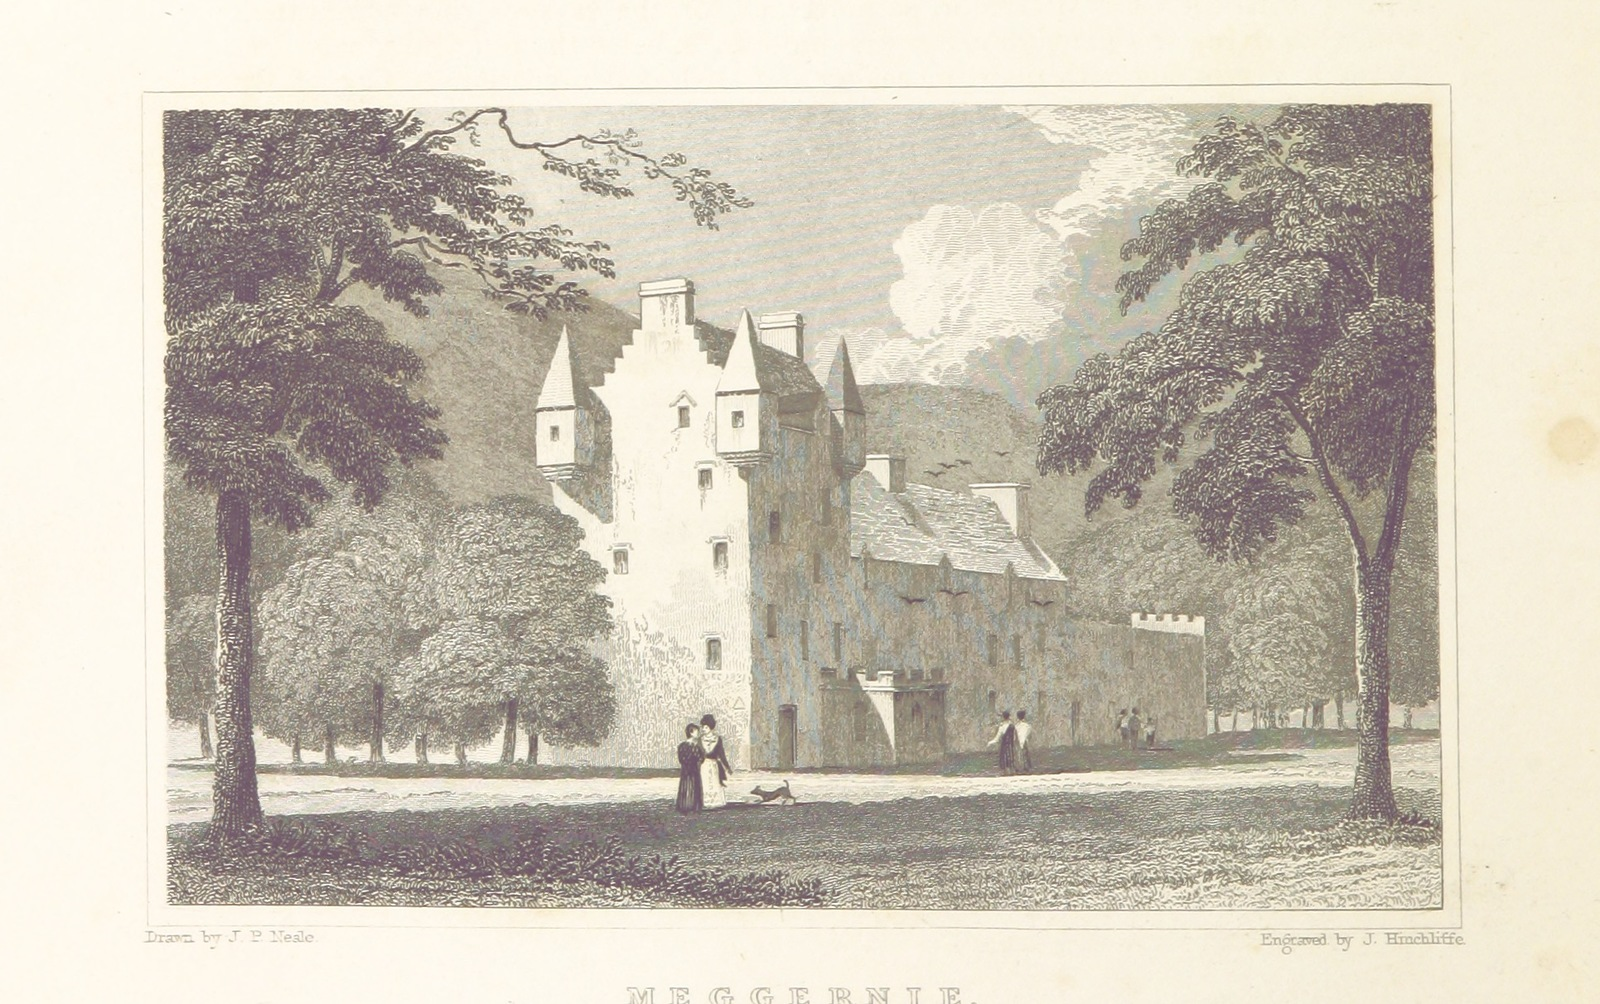 """Meggernie Castle from """"Modern Athens, displayed in a series of views; or, Edinburgh in the nineteenth century; exhibiting the whole of the new buildings, modern improvements, antiquities, & picturesque scenery of the Scottish metropolis & its environs, from original drawings by Mr. T. H. Shepherd. With historical, topographical & critical illustrations [by John Britton]"""""""